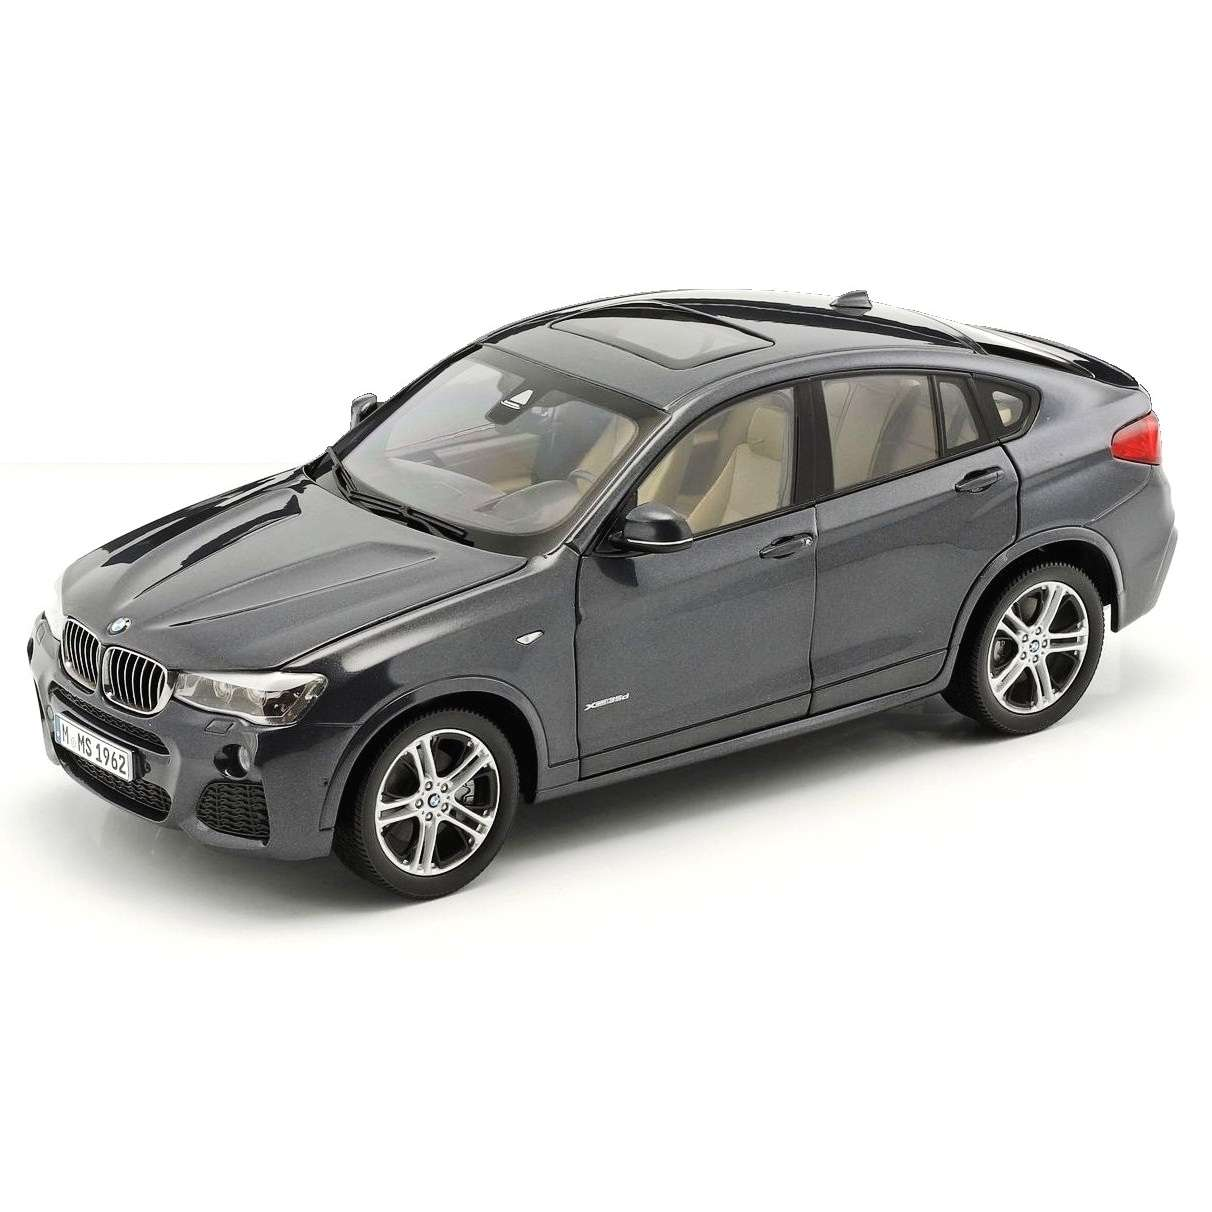 Diecast Car 1/18: Street Cars - BMW X4 XDrive 3.5d F26, 2014 Photo